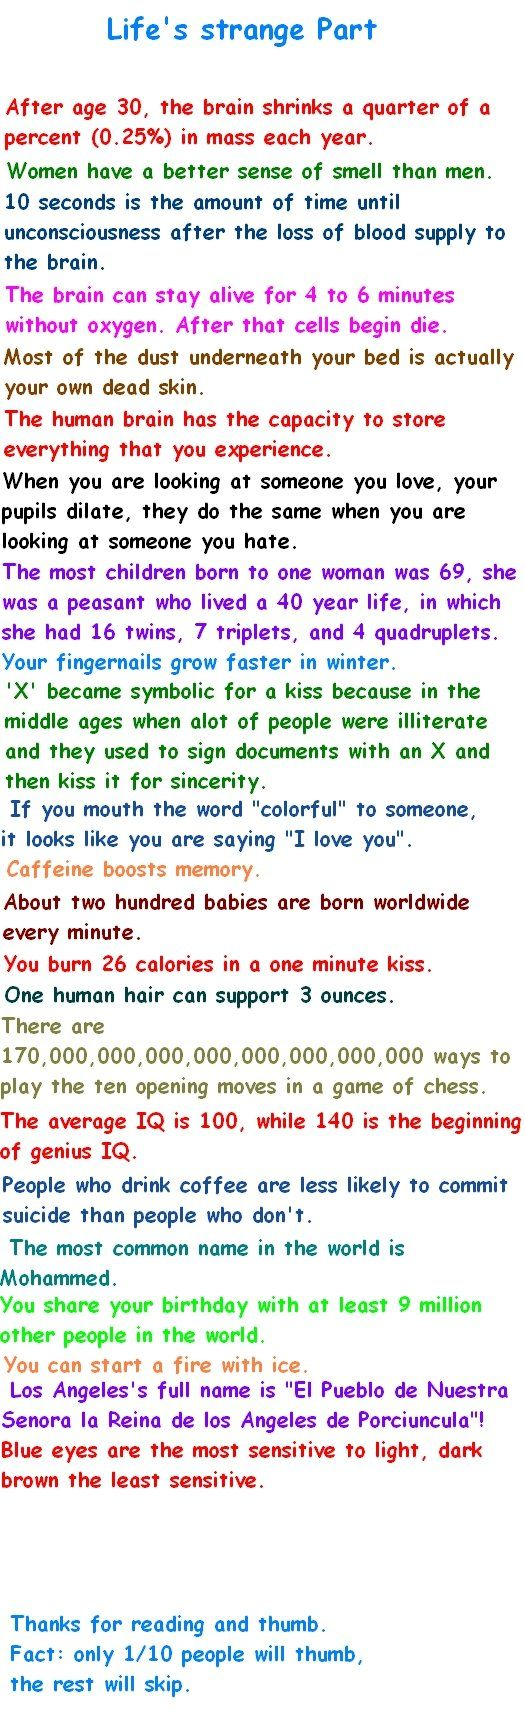 "10. I KNEW IT X's=kisses O's=hugs 11. Or ""Olive juice"" The last one. That's why my eyes hurt when I go into the sun, because they're blue. hmm"